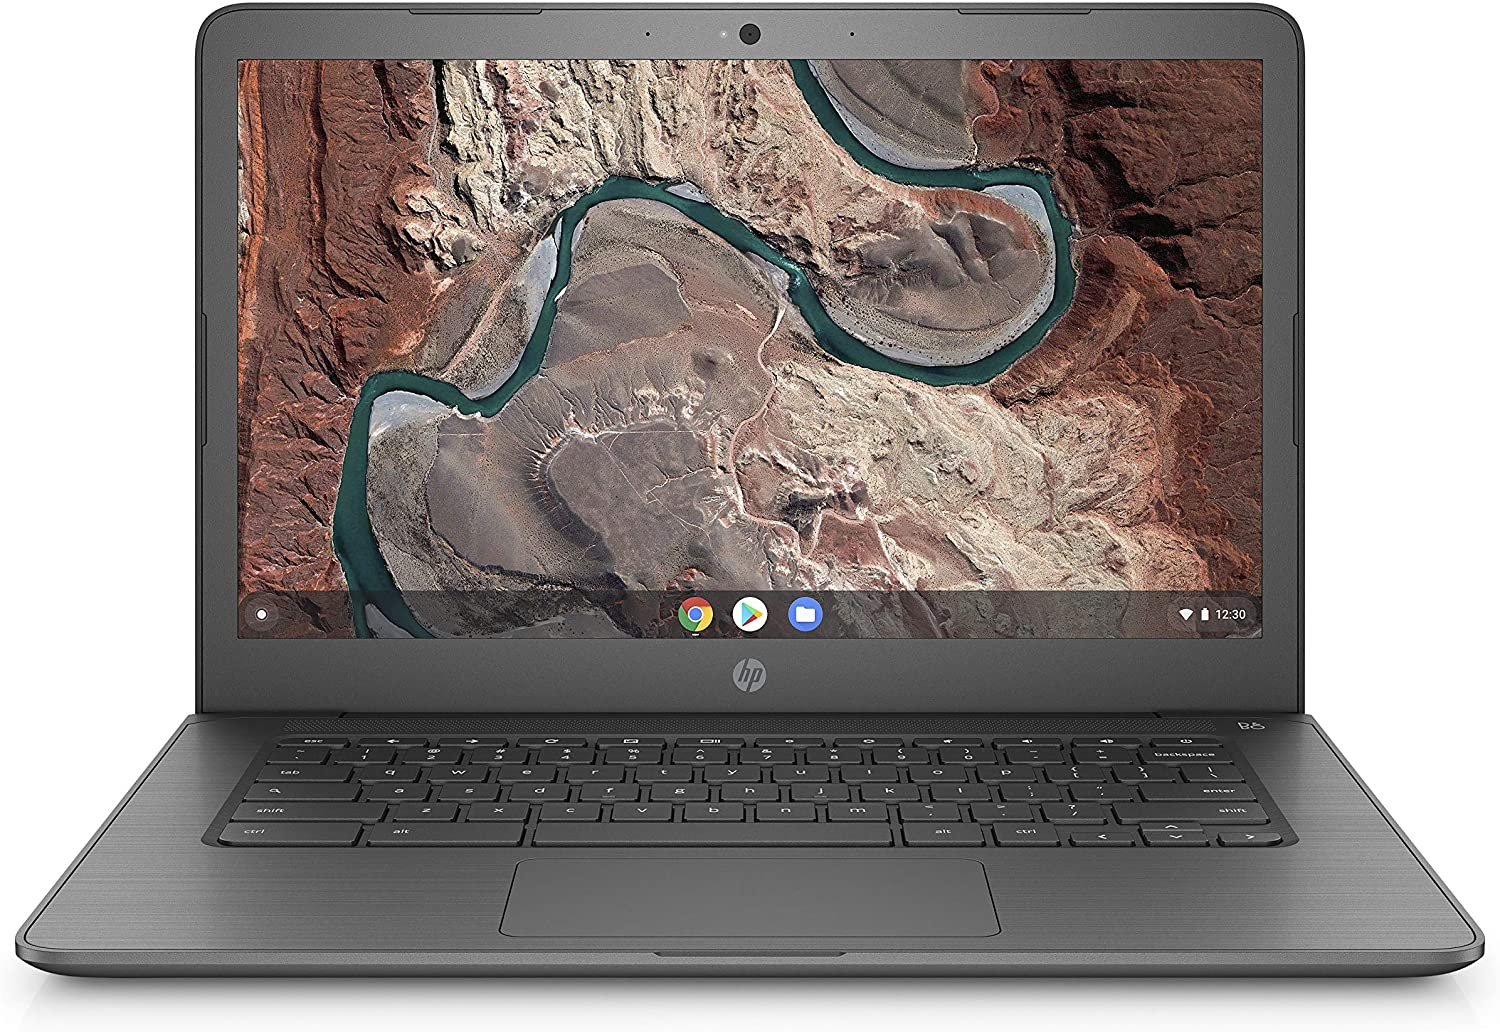 affordable laptops in 2020